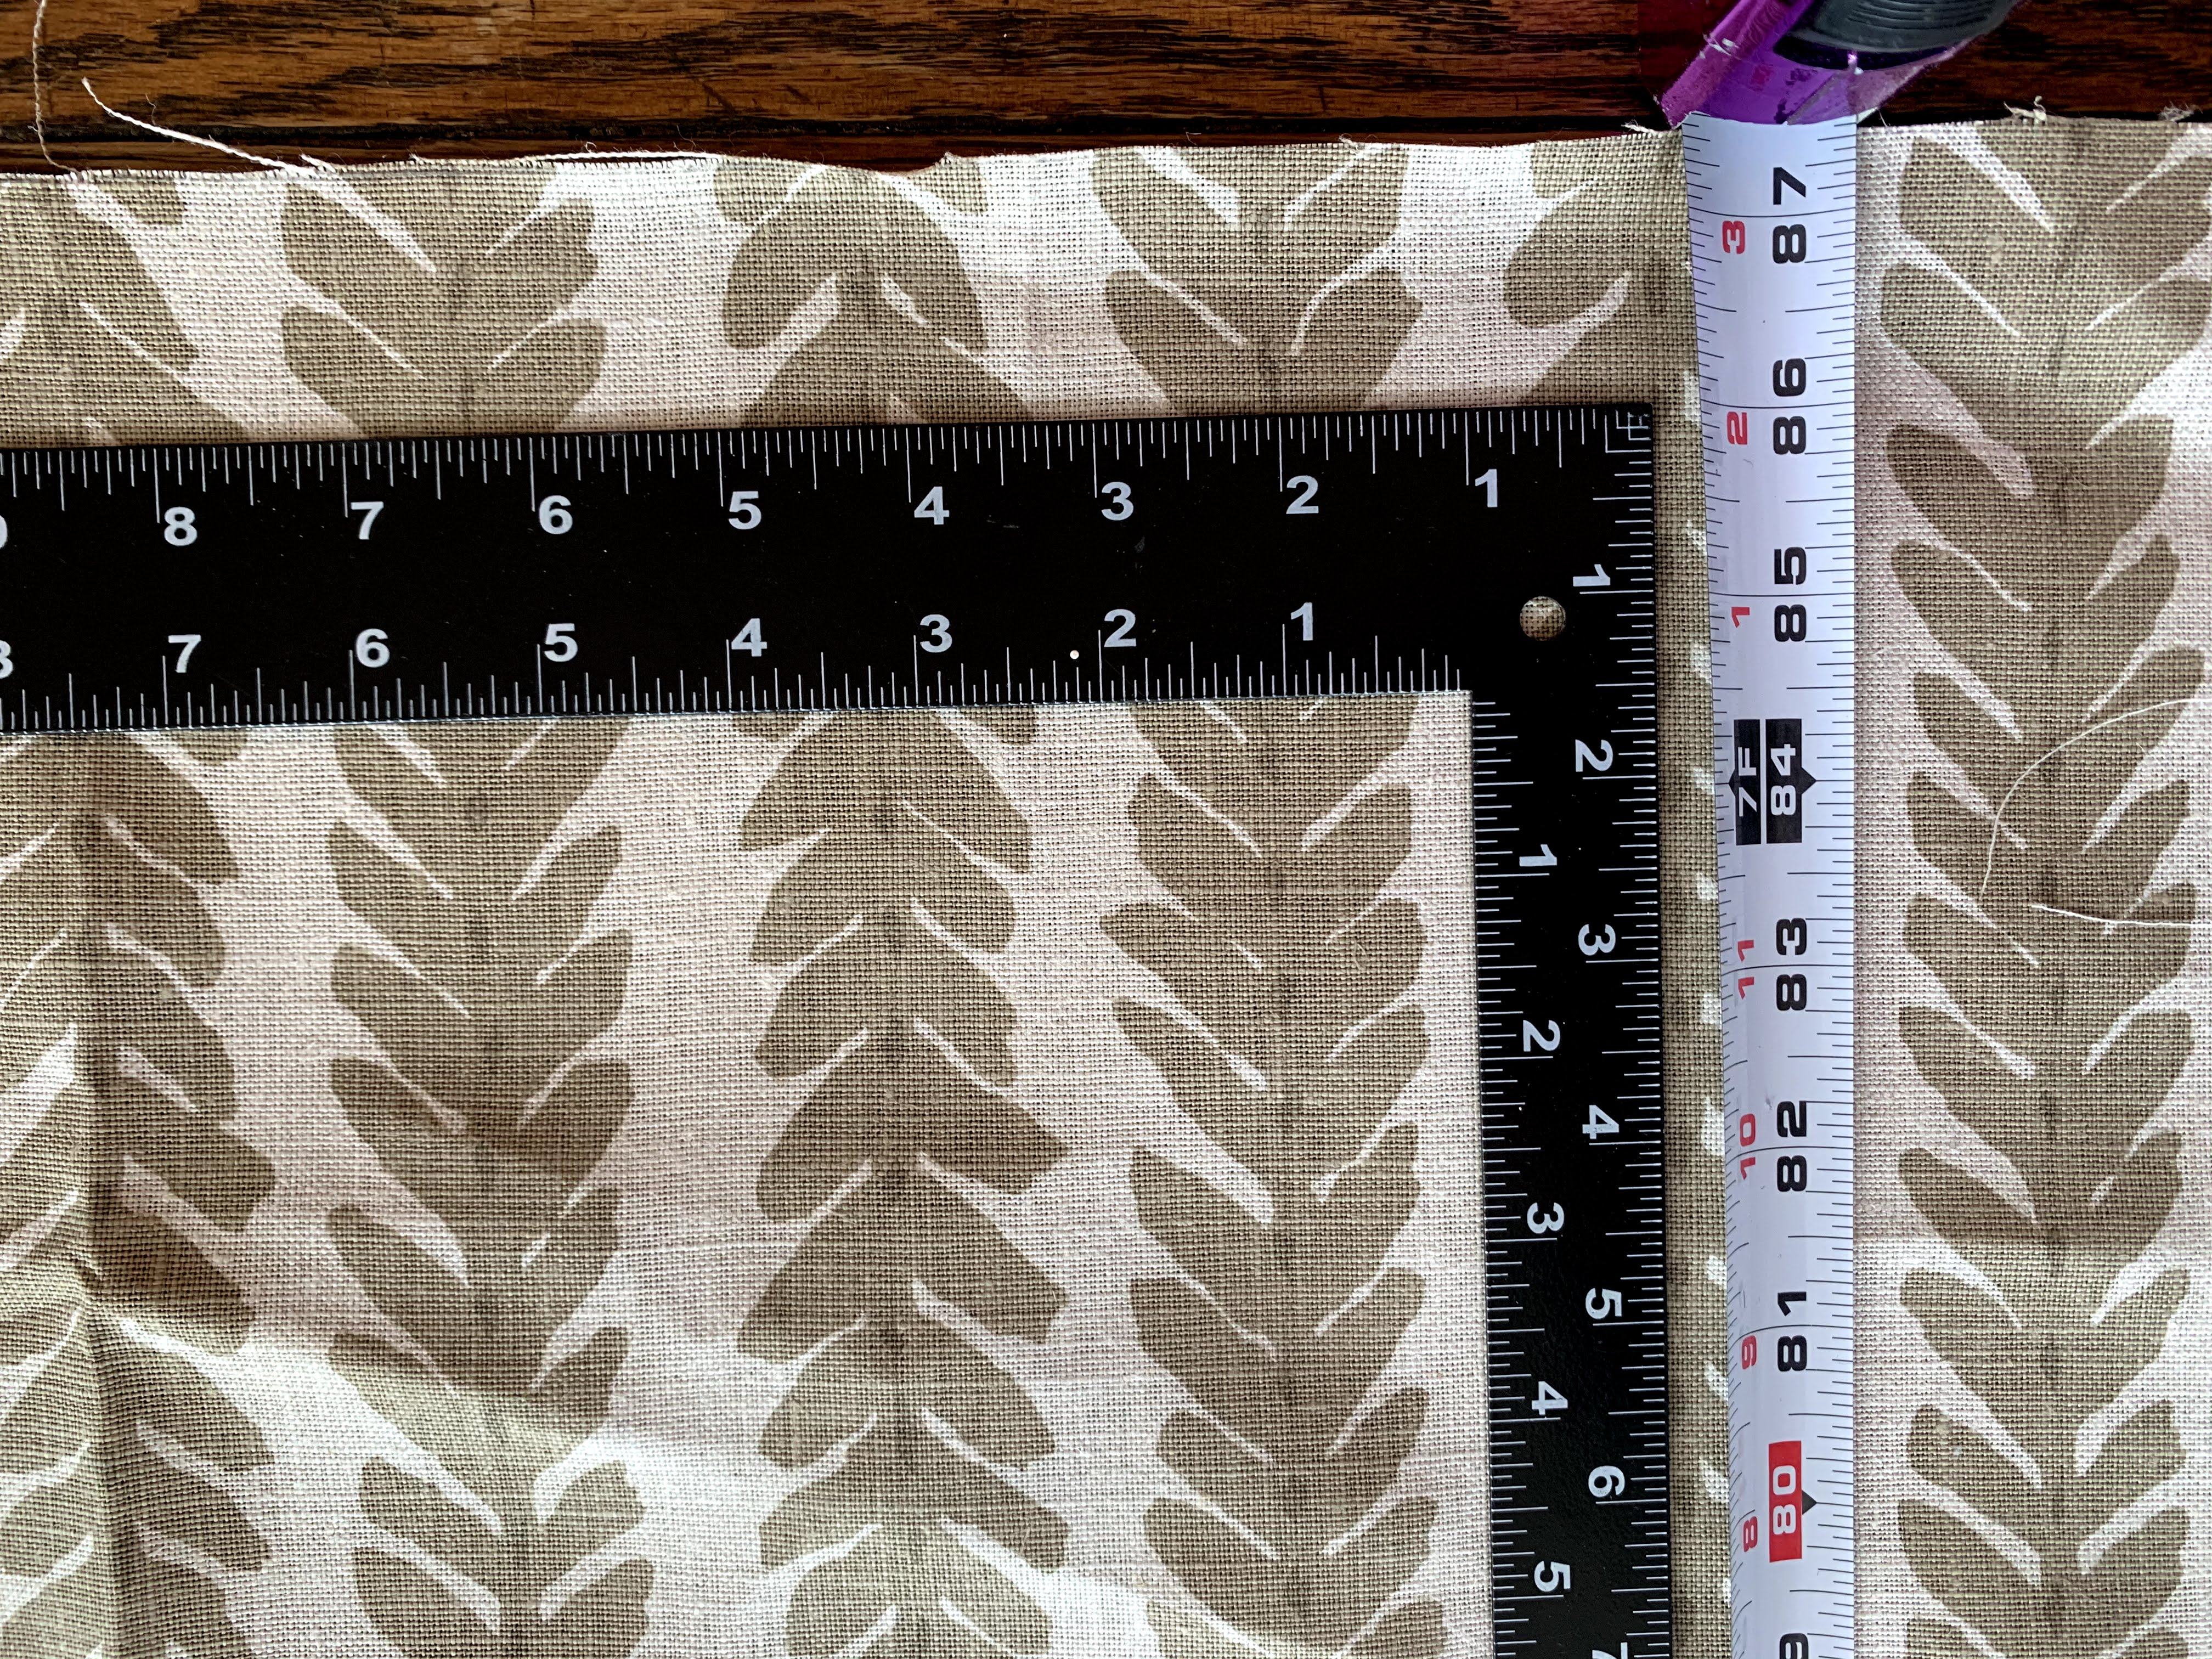 image of ruler on fabric